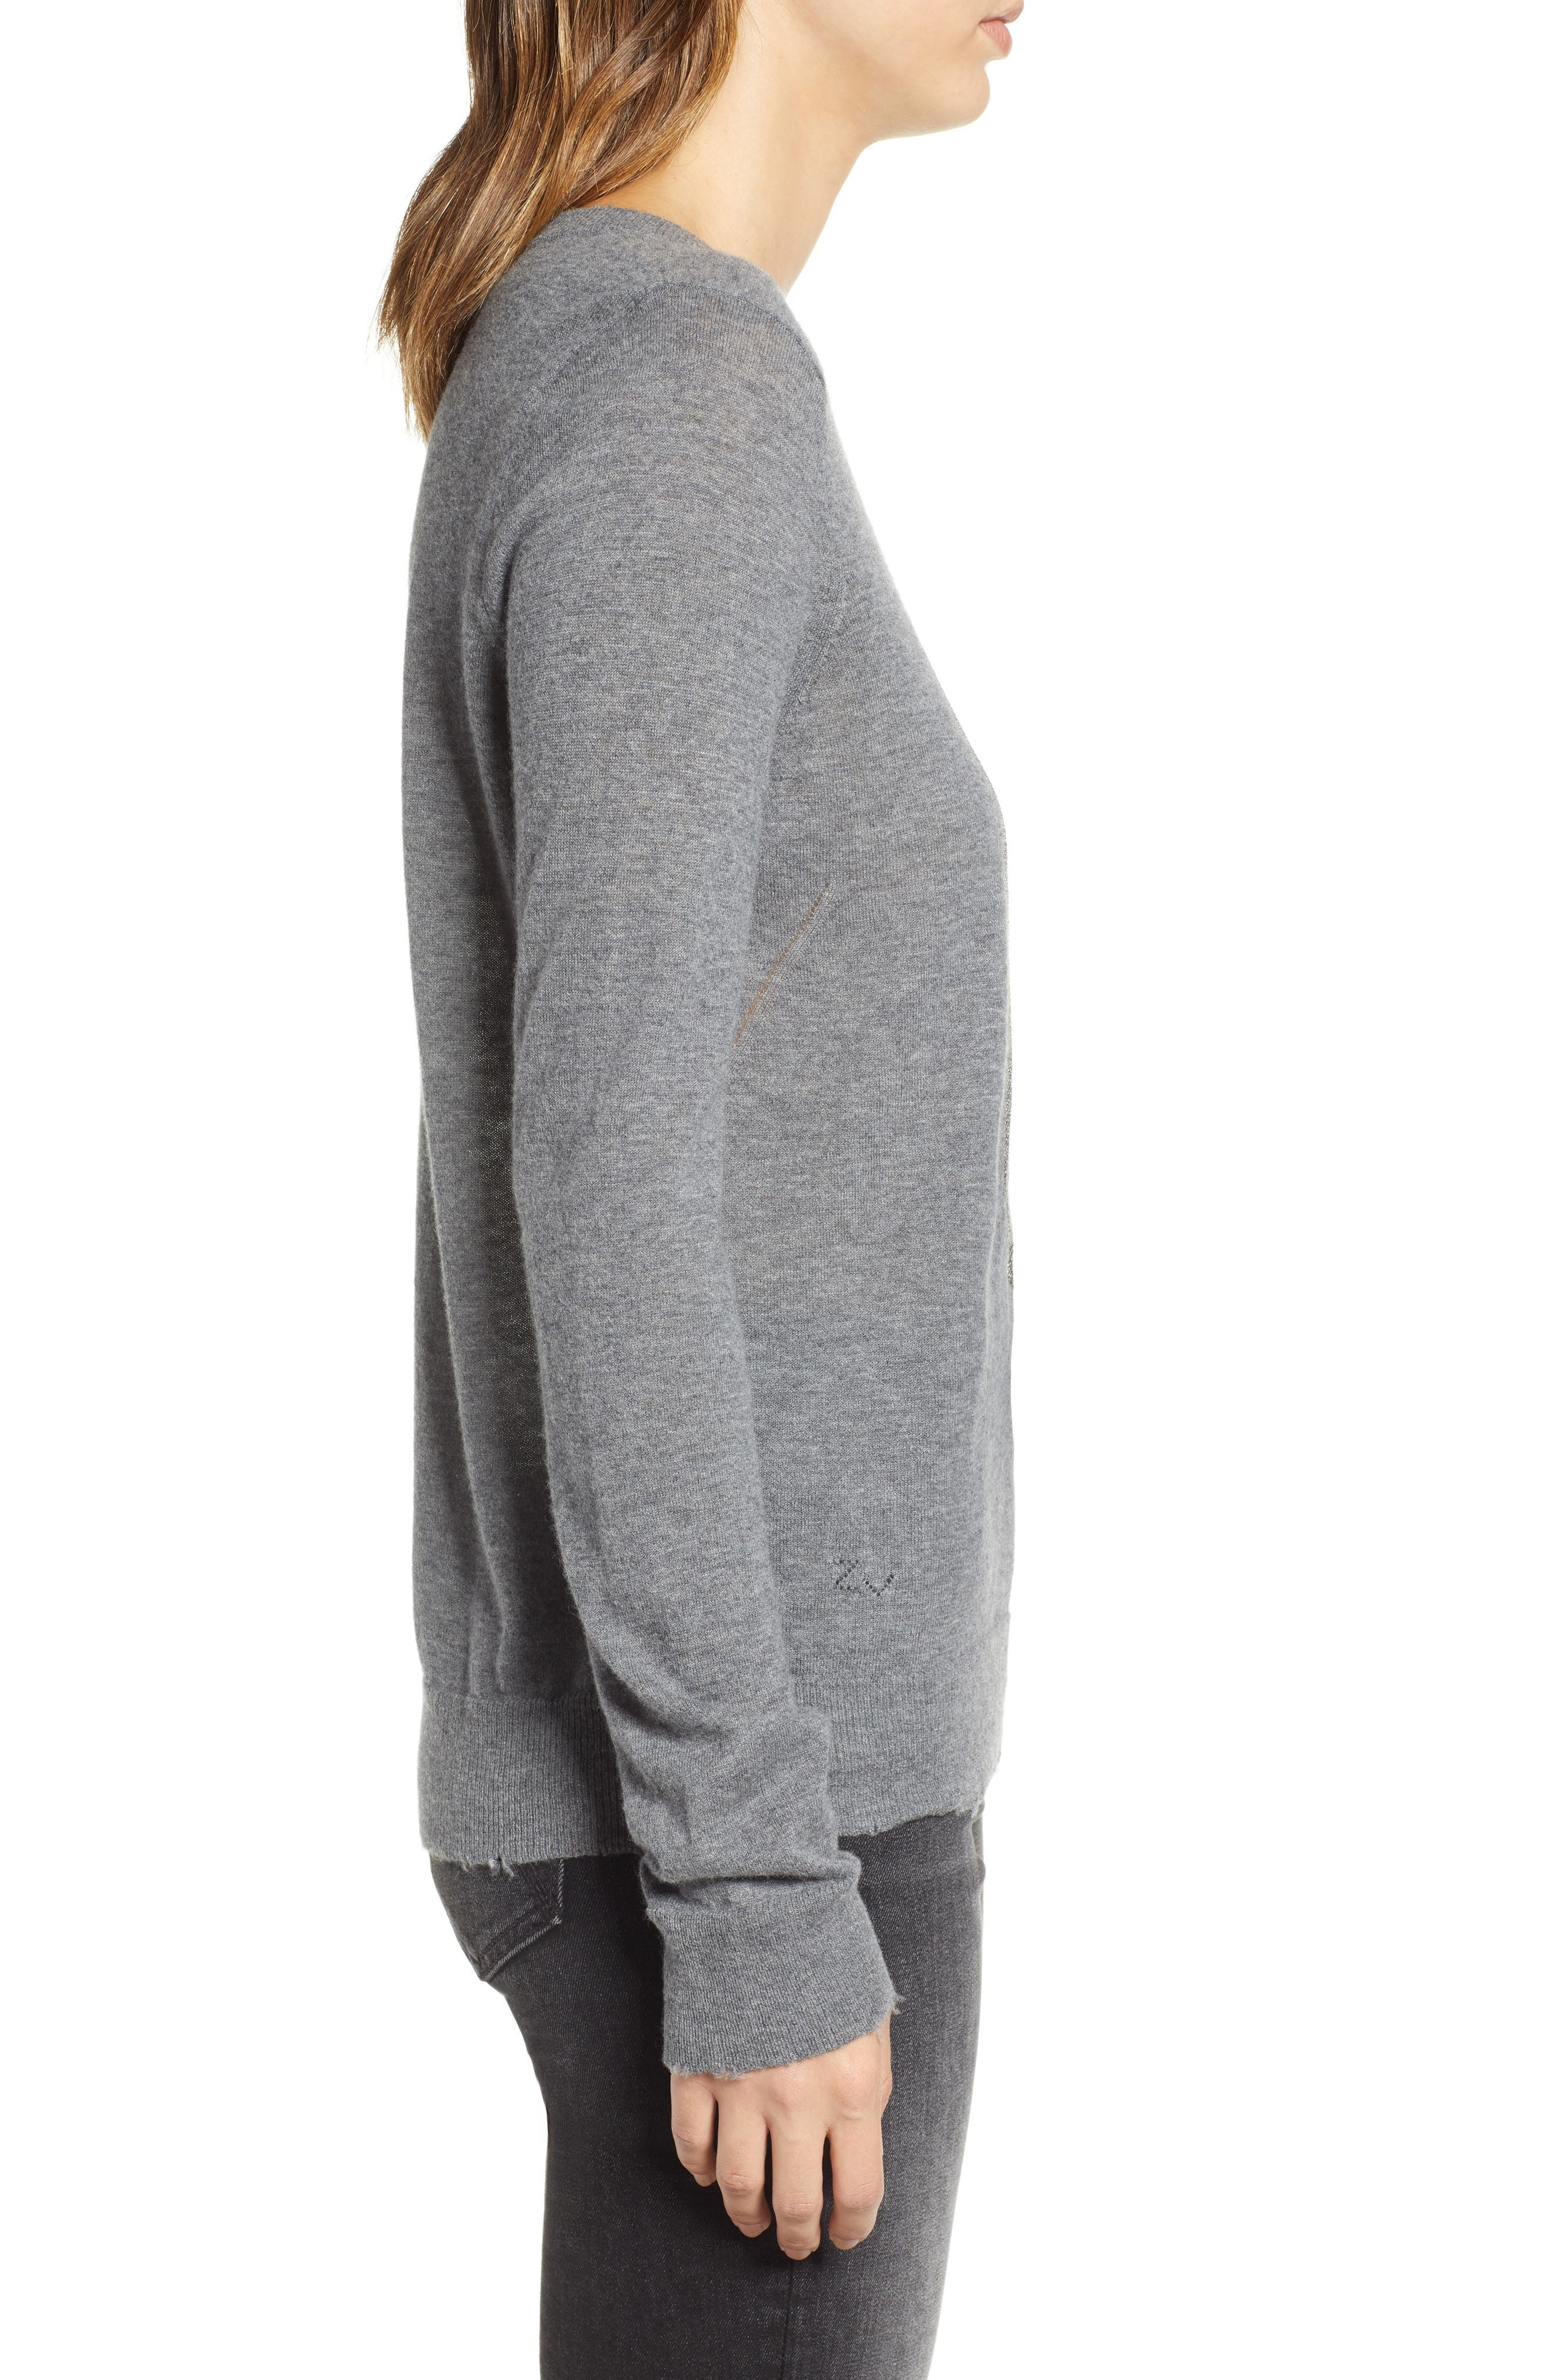 Miss Bis Skull Cashmere Tee,                             Alternate thumbnail 3, color,                             GRIS